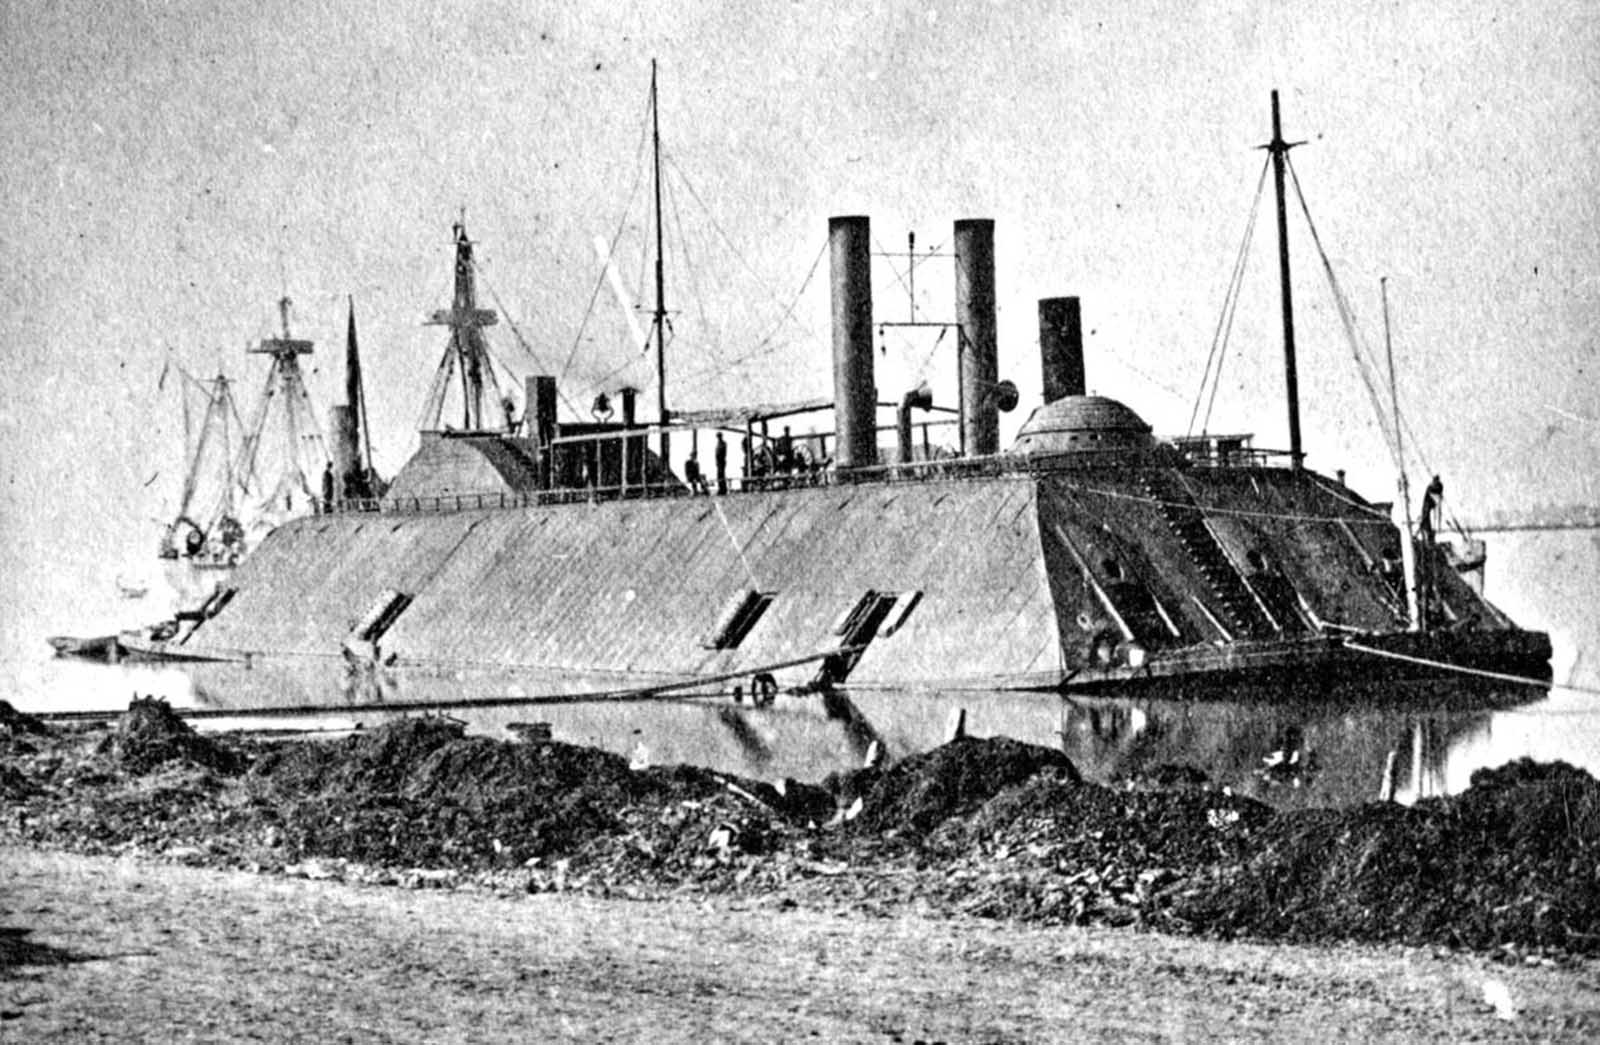 An examination of the naval warfare during the civil war